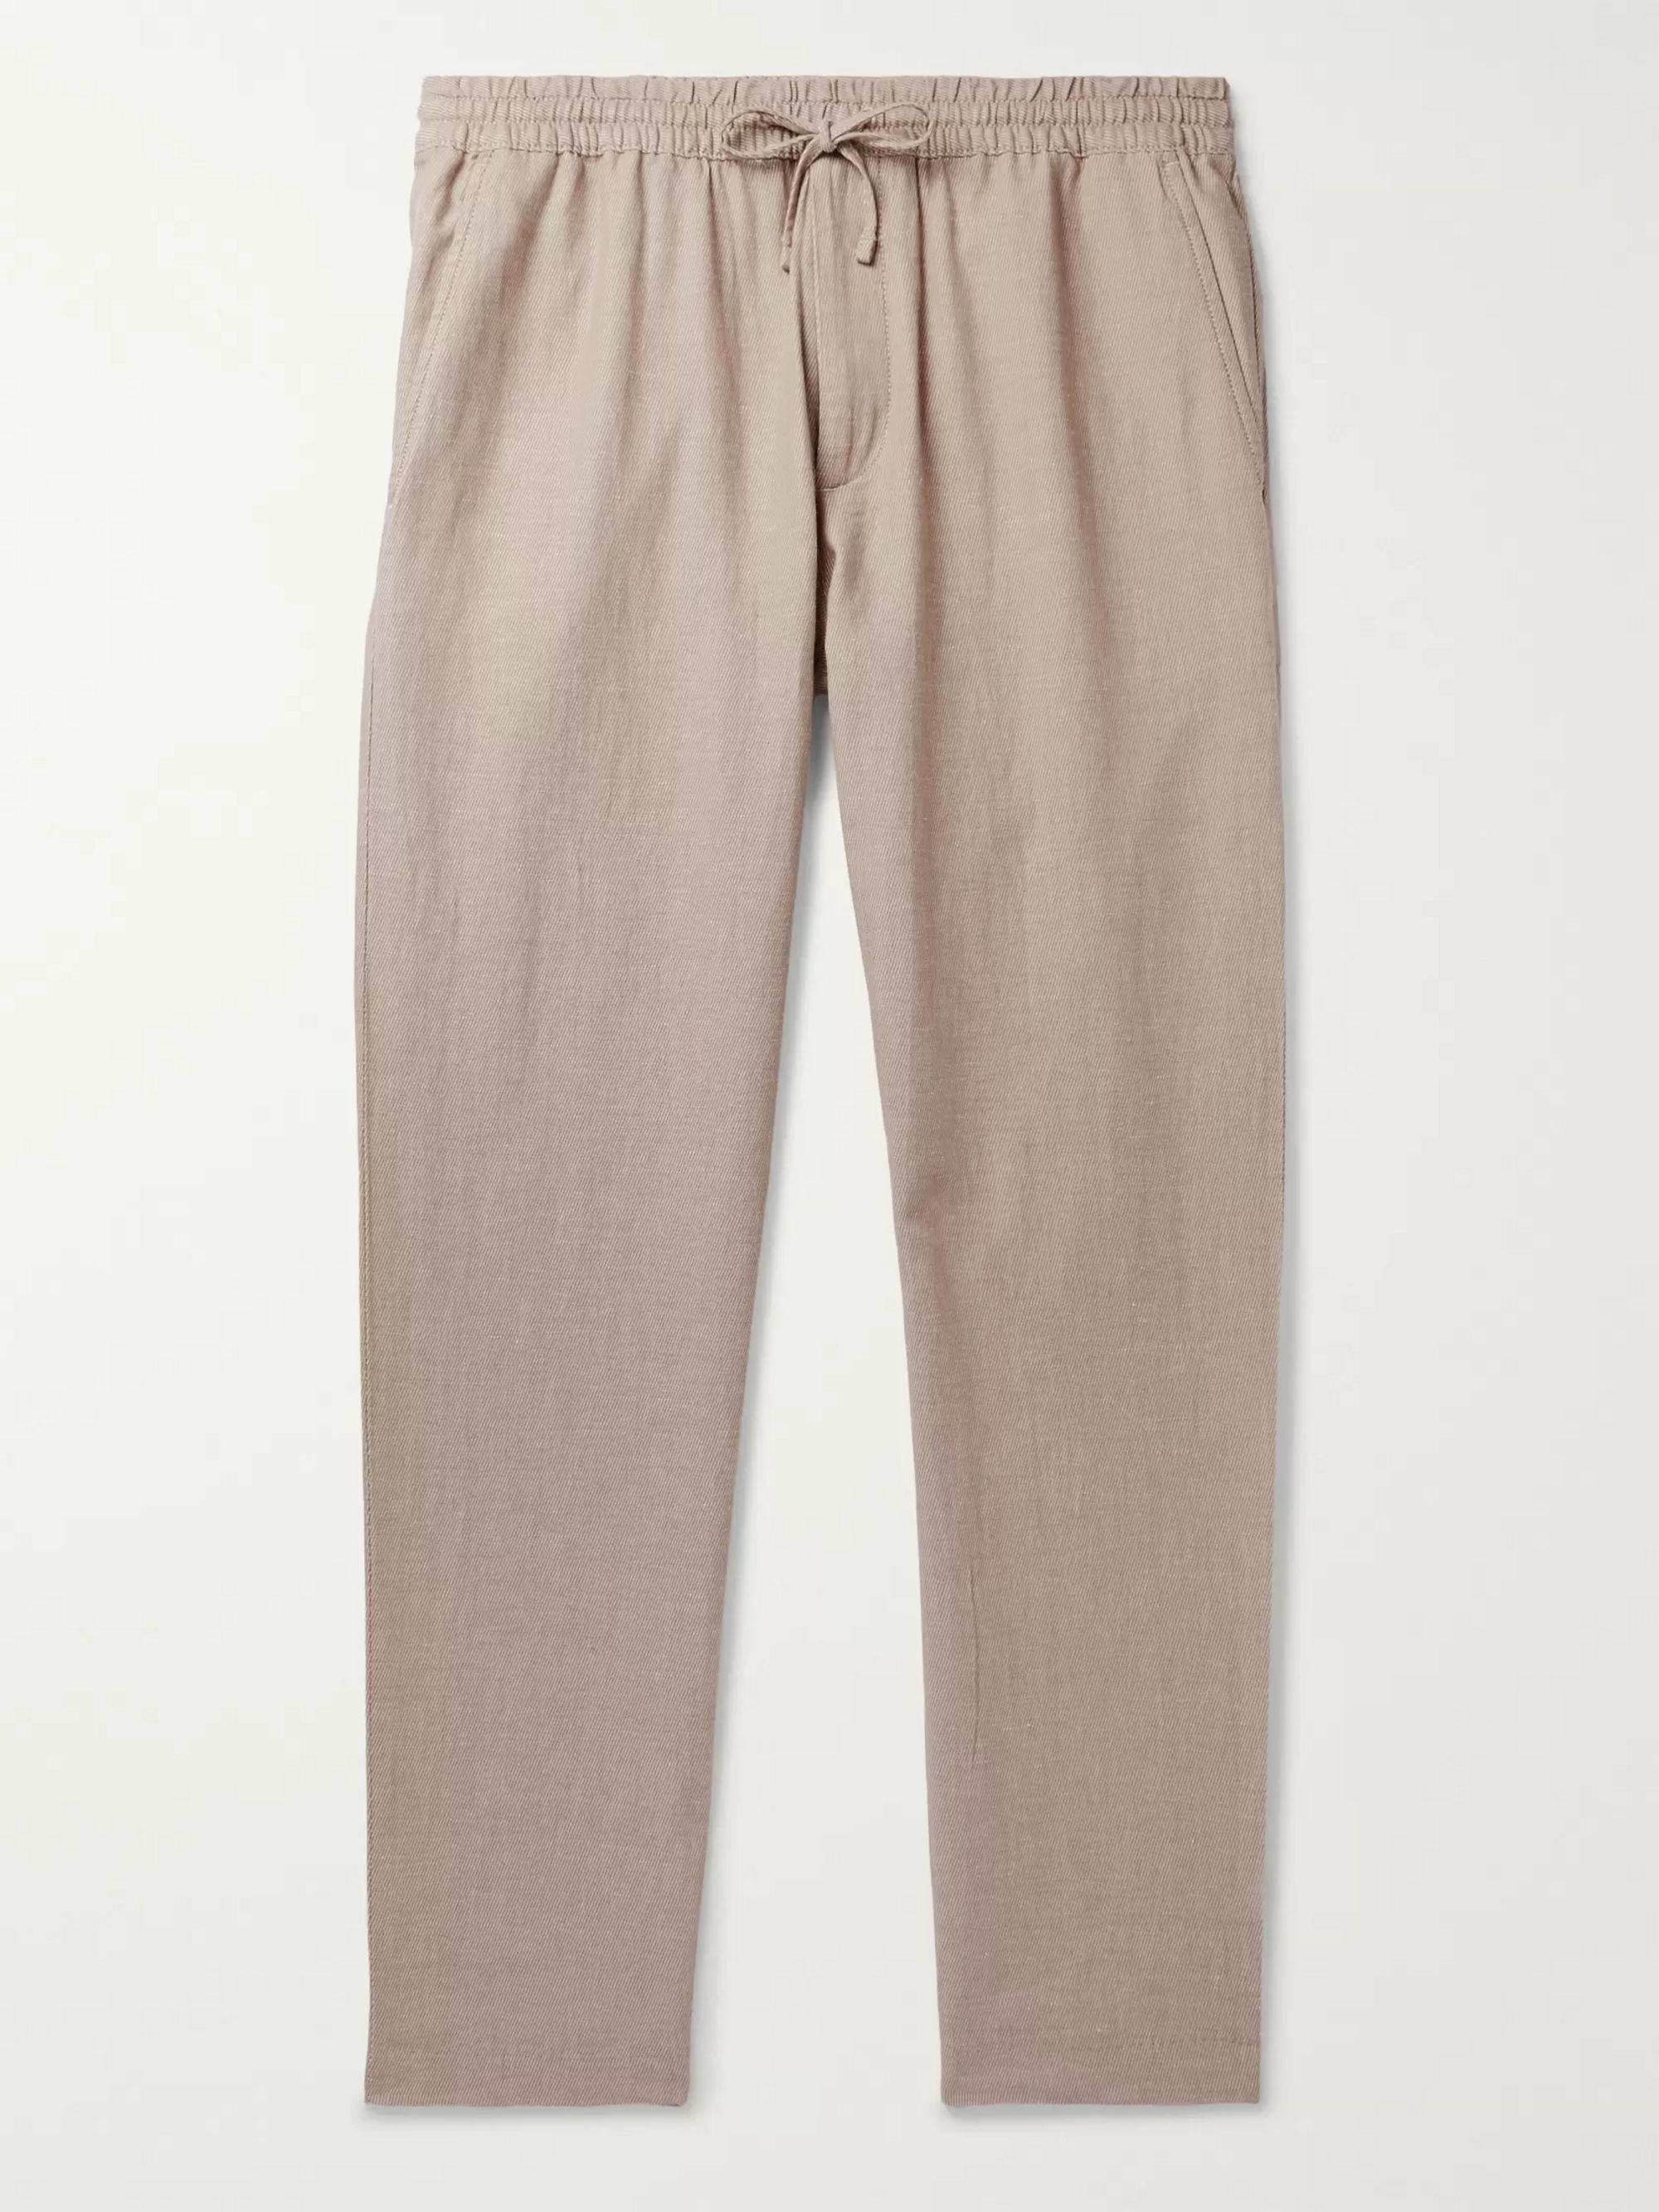 CLUB MONACO Tapered Stretch Cotton and Linen-Blend Drawstring Trousers